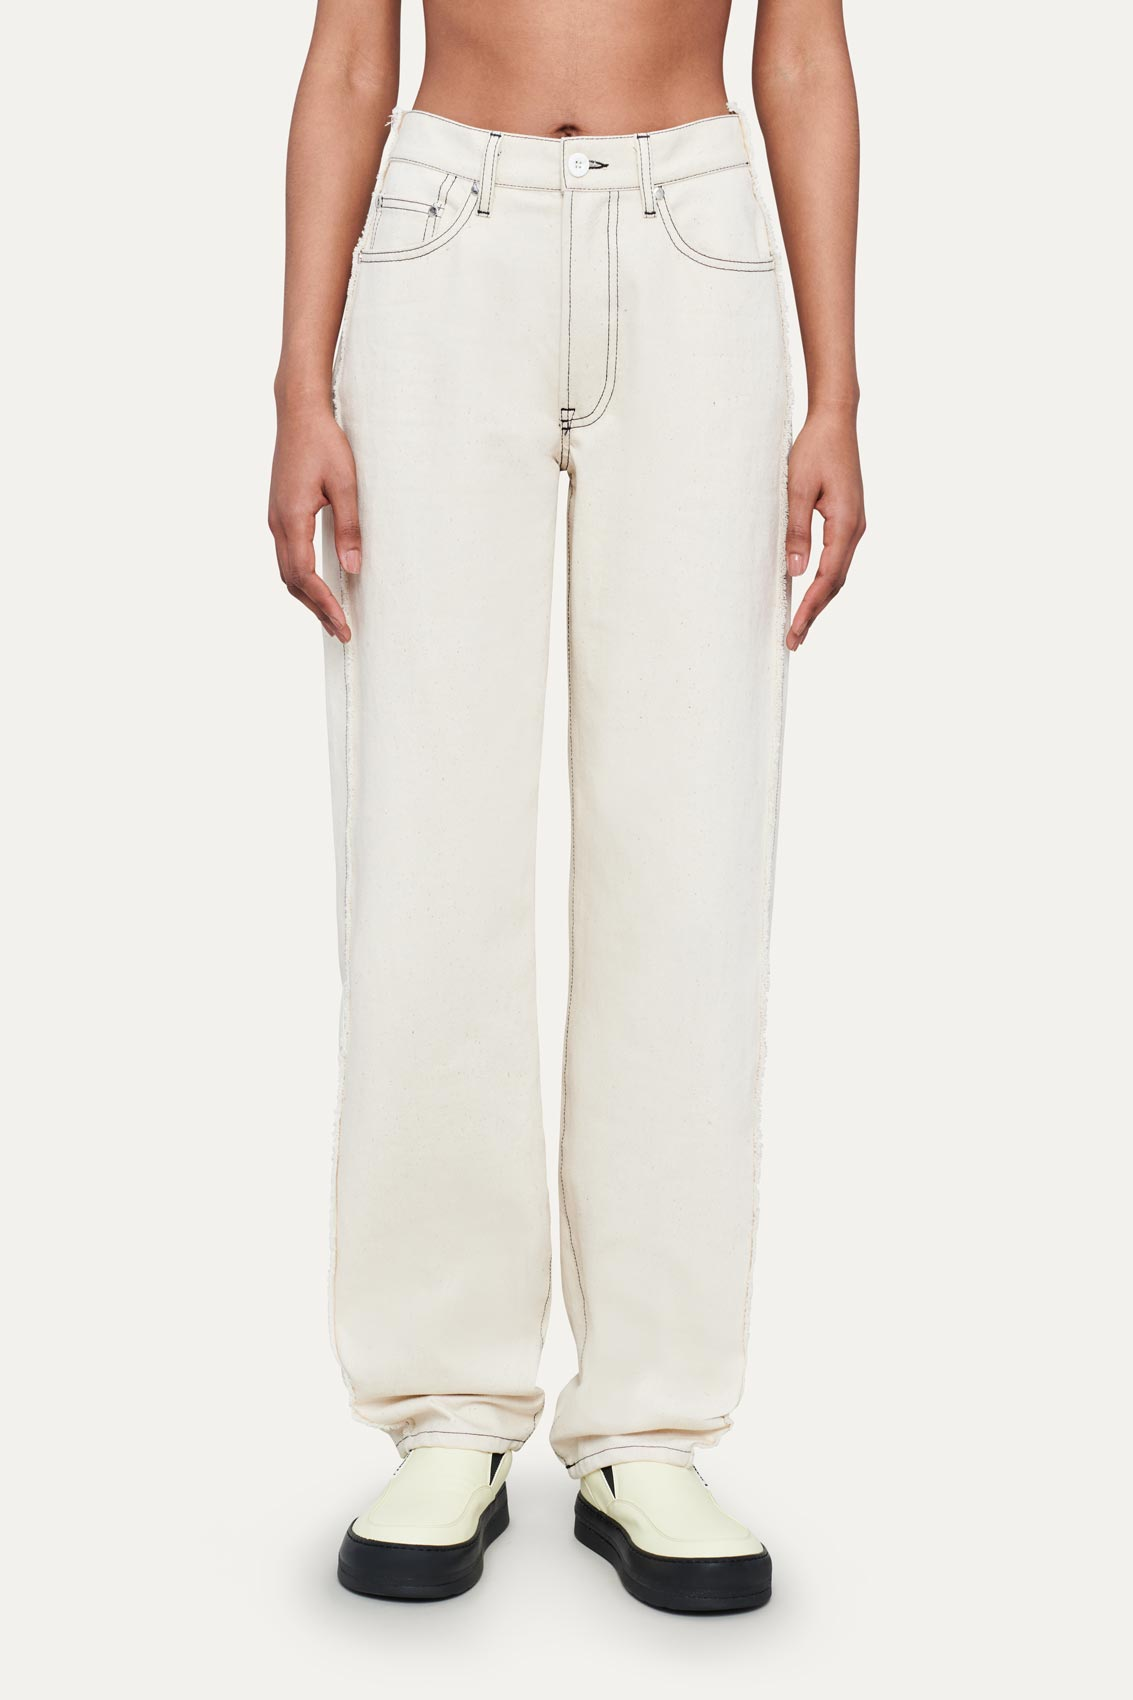 OFF WHITE CLASSIC PANTS WITH FRINGED BANDS